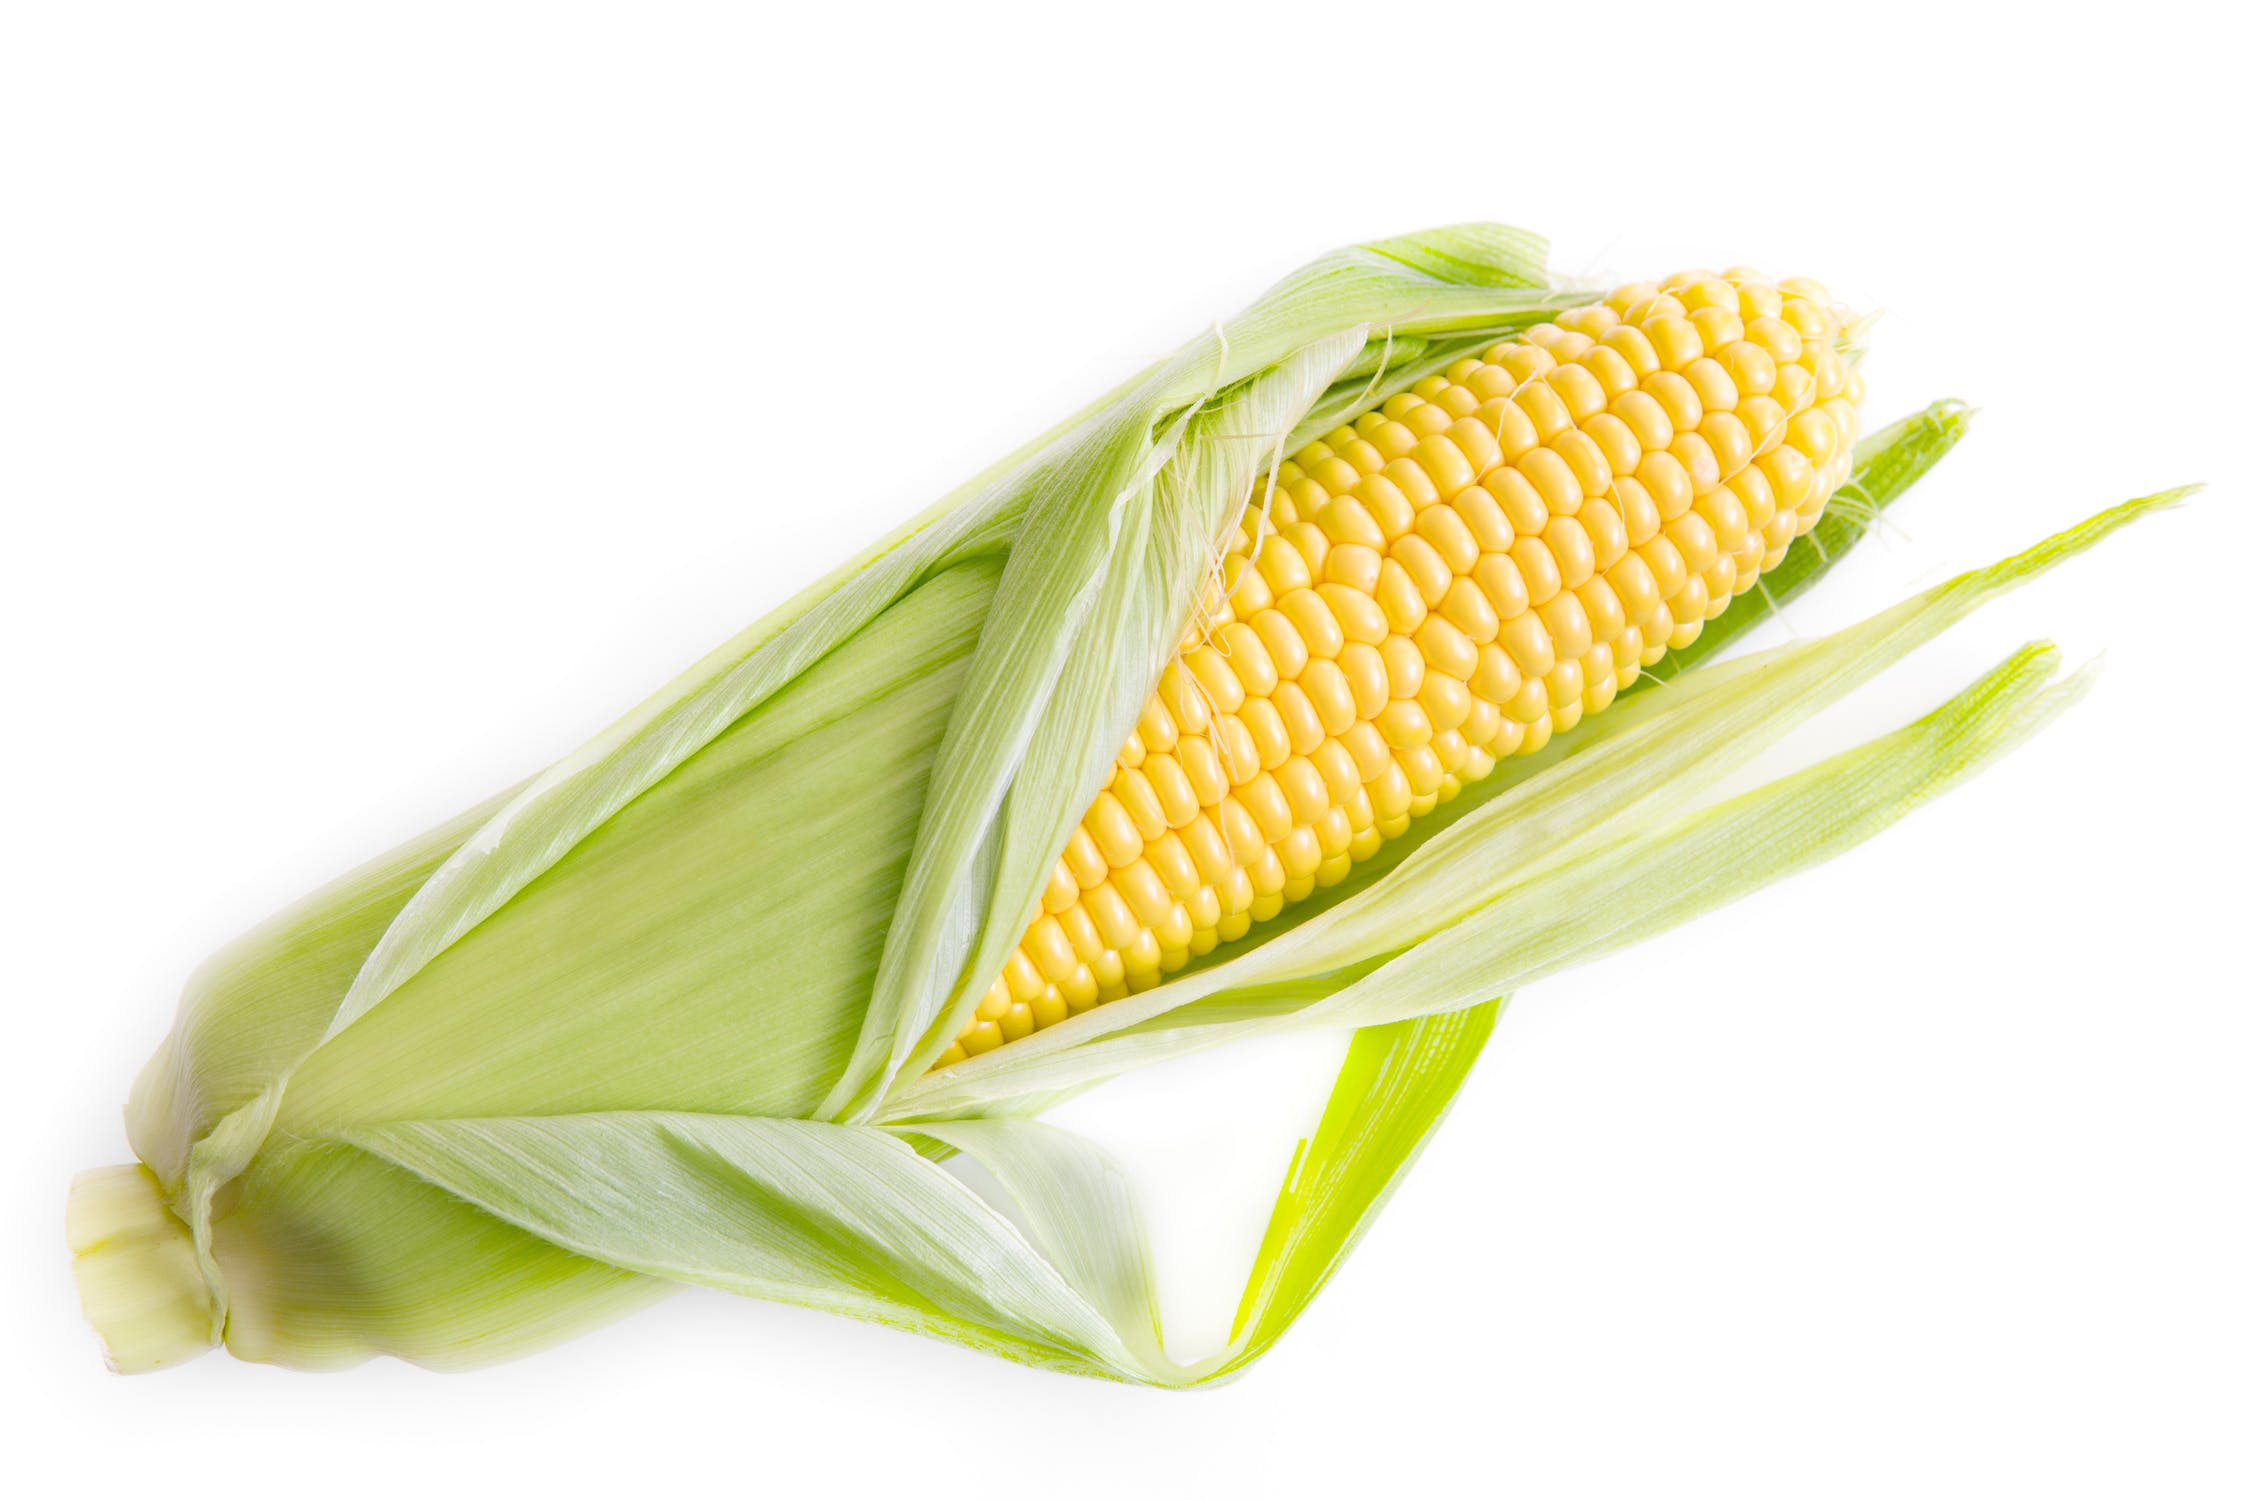 shucking corn, what is shucking corn, corn cob shucker, what is a corn shuck, how to husk corn on the cob, what is shucking, corn shucking video, shucking corn with ken, easy shucking corn video, how to husk corn, how to shuck corn, what is corn husk, what does it mean to shuck corn, husk of corn, how to clean an ear of corn, remove husk from corn, peeling corn, how to husk corn quickly, easy way to shuck corn, corn silk remover, husking corn by hand, how to shuck corn on the cob, how to clean corn, how to peel corn on the cob, how to peel corn, how to remove silk from corn, best way to shuck corn, cleaning corn on the cob, how to clean corn on the cob, easiest way to shuck corn for freezing, how to peel corn without silk, how to shuck corn without microwave, easy way to shuck corn without cooking it, stuff that sticks out of an ear of corn, how to shuck corn easily, corn shucking trick, easy way to shuck corn without microwave, shuck corn easy, how to shuck corn clean with no silks, do you shuck corn, chuck corn, shelling corn by hand, unhusked corn, hand shucked corn, removing silk from sweet corn, how to get silk off corn, corn hair, corn on the cob shucking trick, shucking sweet corn, best way to remove silk from corn on the cob, how to remove corn silk before cooking, how to desilk corn, corn shucking brush, de silking corn on the cob, easy way to shuck corn before cooking, how to peel corn off the cob, best way to remove corn silk, how to shuck corn on the cob fast, best way to silk corn, easy way to husk corn, how to easily remove silk from corn on the cob, corn husking video, best way to clean sweet corn, how to remove silk from corn without removing husk, how to husk corn without silk, can you shuck corn ahead of time, how to shuck corn like a boss, how to remove silk from sweet corn, how to remove corn silk from corn on cob, easy way to shuck corn on the cob, what does shucking corn mean, best way to husk corn, easy way to shuck raw corn, fastest way to shuck corn, tips for shucking corn, how to peel corn easily, can you shuck corn day before, husk corn on the cob, how to easily remove corn silk, how to remove silk from ears of corn, peeling corn hack, shuck corn hack, peeling corn on the cob hack, cooking corn on the cob without removing husks, corn on the cob microwave trick, silking corn in microwave, how to shuck corn in microwave, microwave corn to remove silk, microwave corn in husk no silk, remove corn silk in microwave, best way to remove corn from cob, corn on the cob easy silk removal, remove corn from cob, corn on the cob trick, microwave corn on cob trick, microwave corn on the cob remove silk, microwave corn husk trick, shucked microwave corn on the cob, how to clean corn in the microwave, clean corn in microwave, how to remove cooked corn from cob, microwave sweet corn without shucking, how to remove corn from cob, husk corn easy